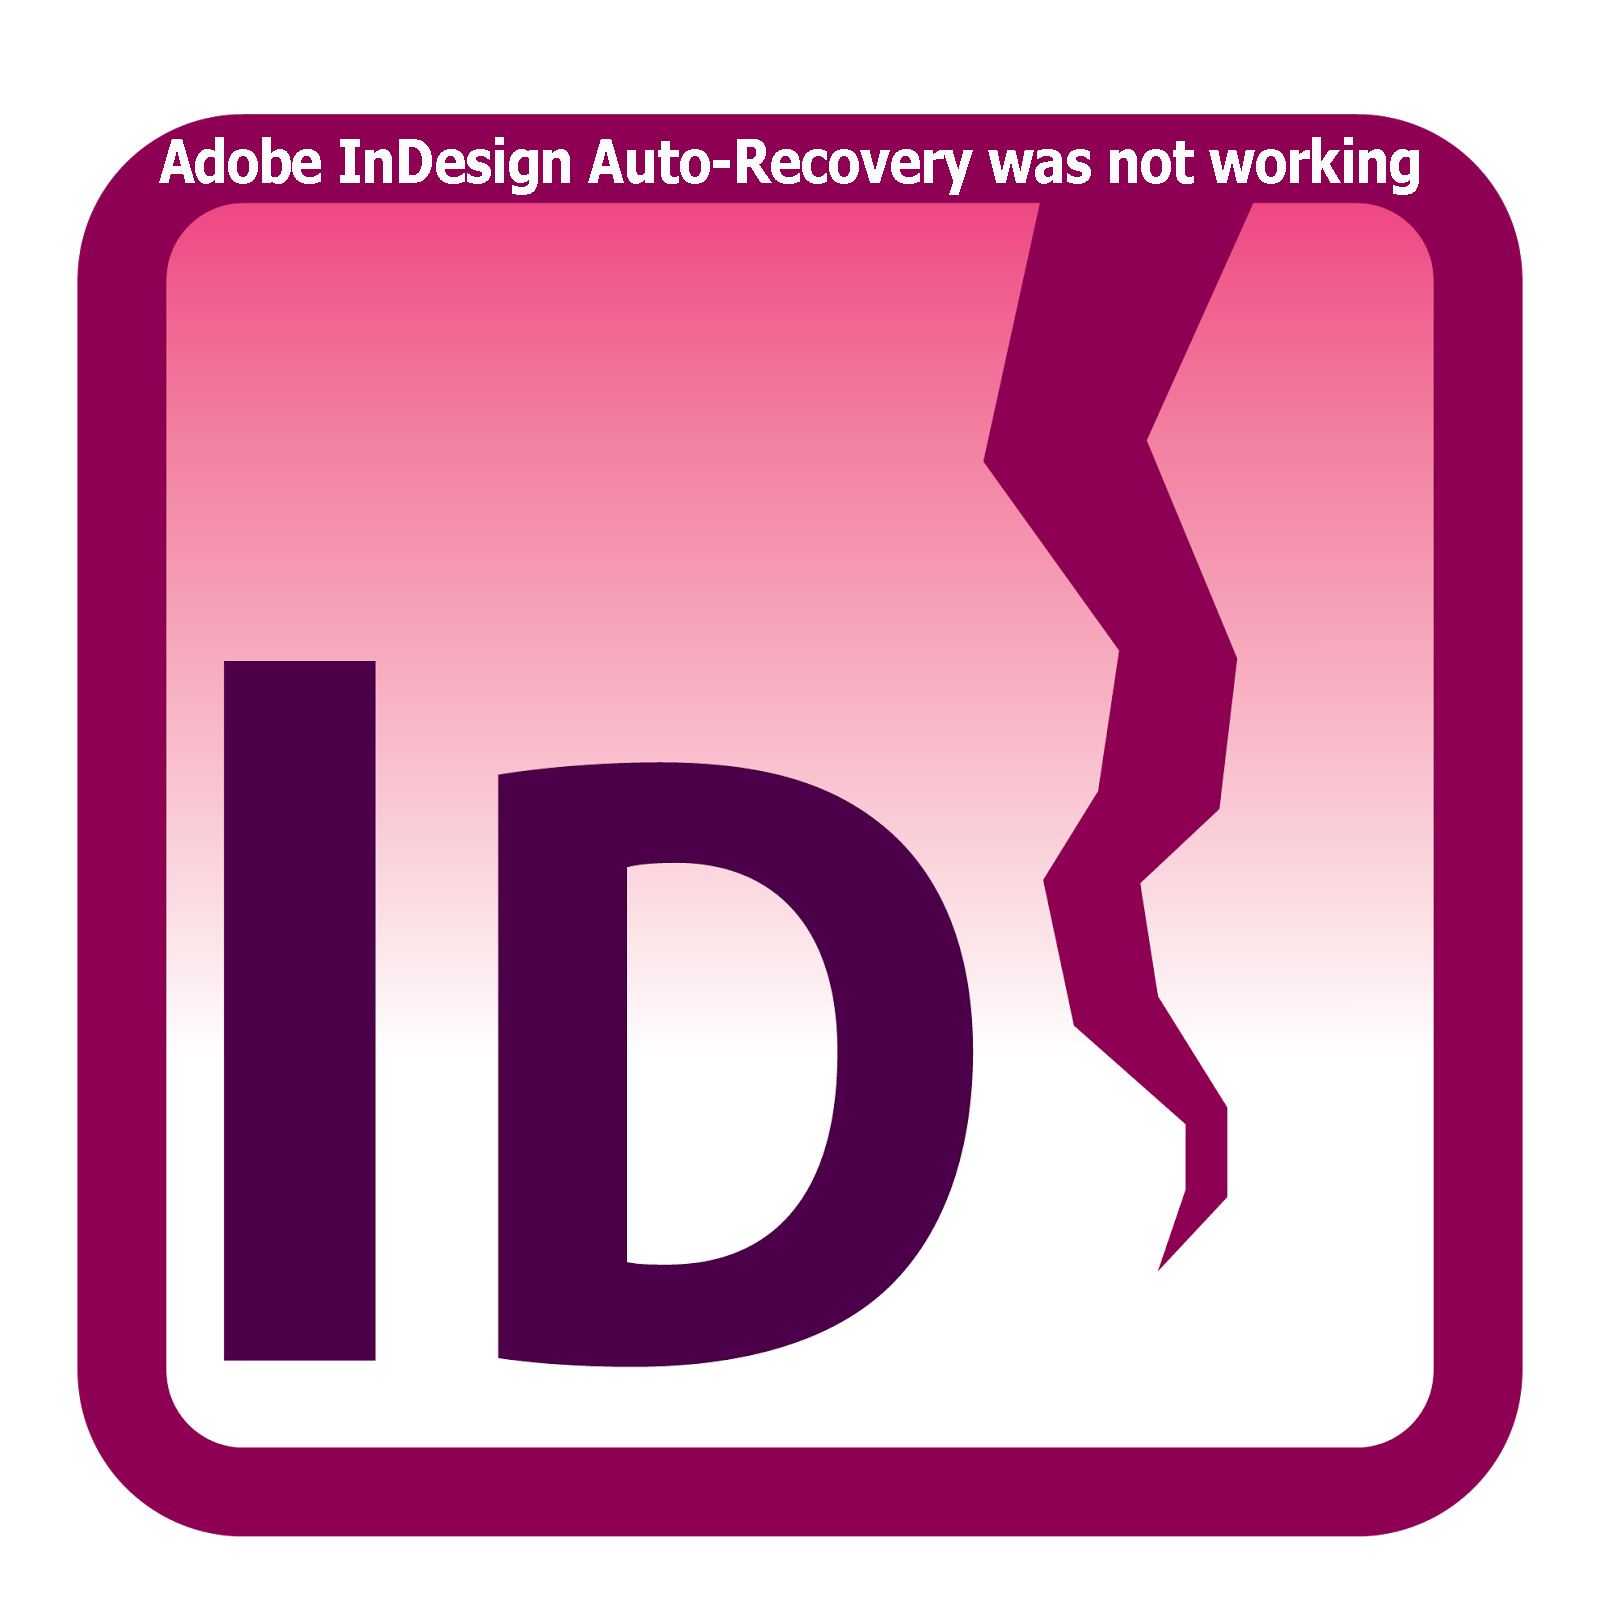 Adobe InDesign Auto-Recovery was not working